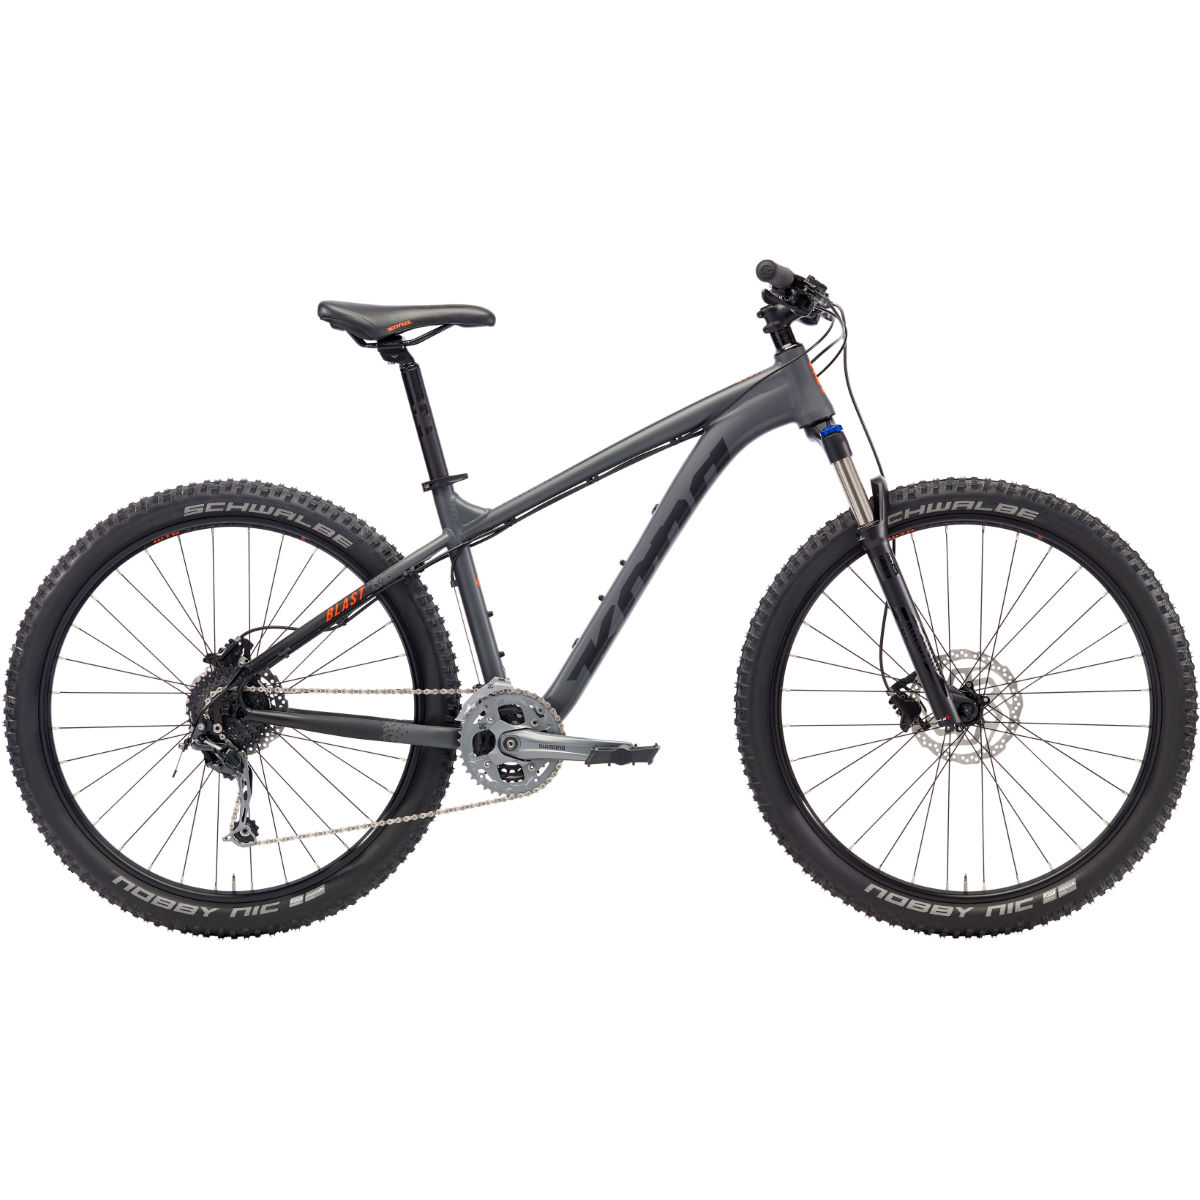 VTT semi-rigide Kona Blast (2018) - Medium Stock Bike Gris